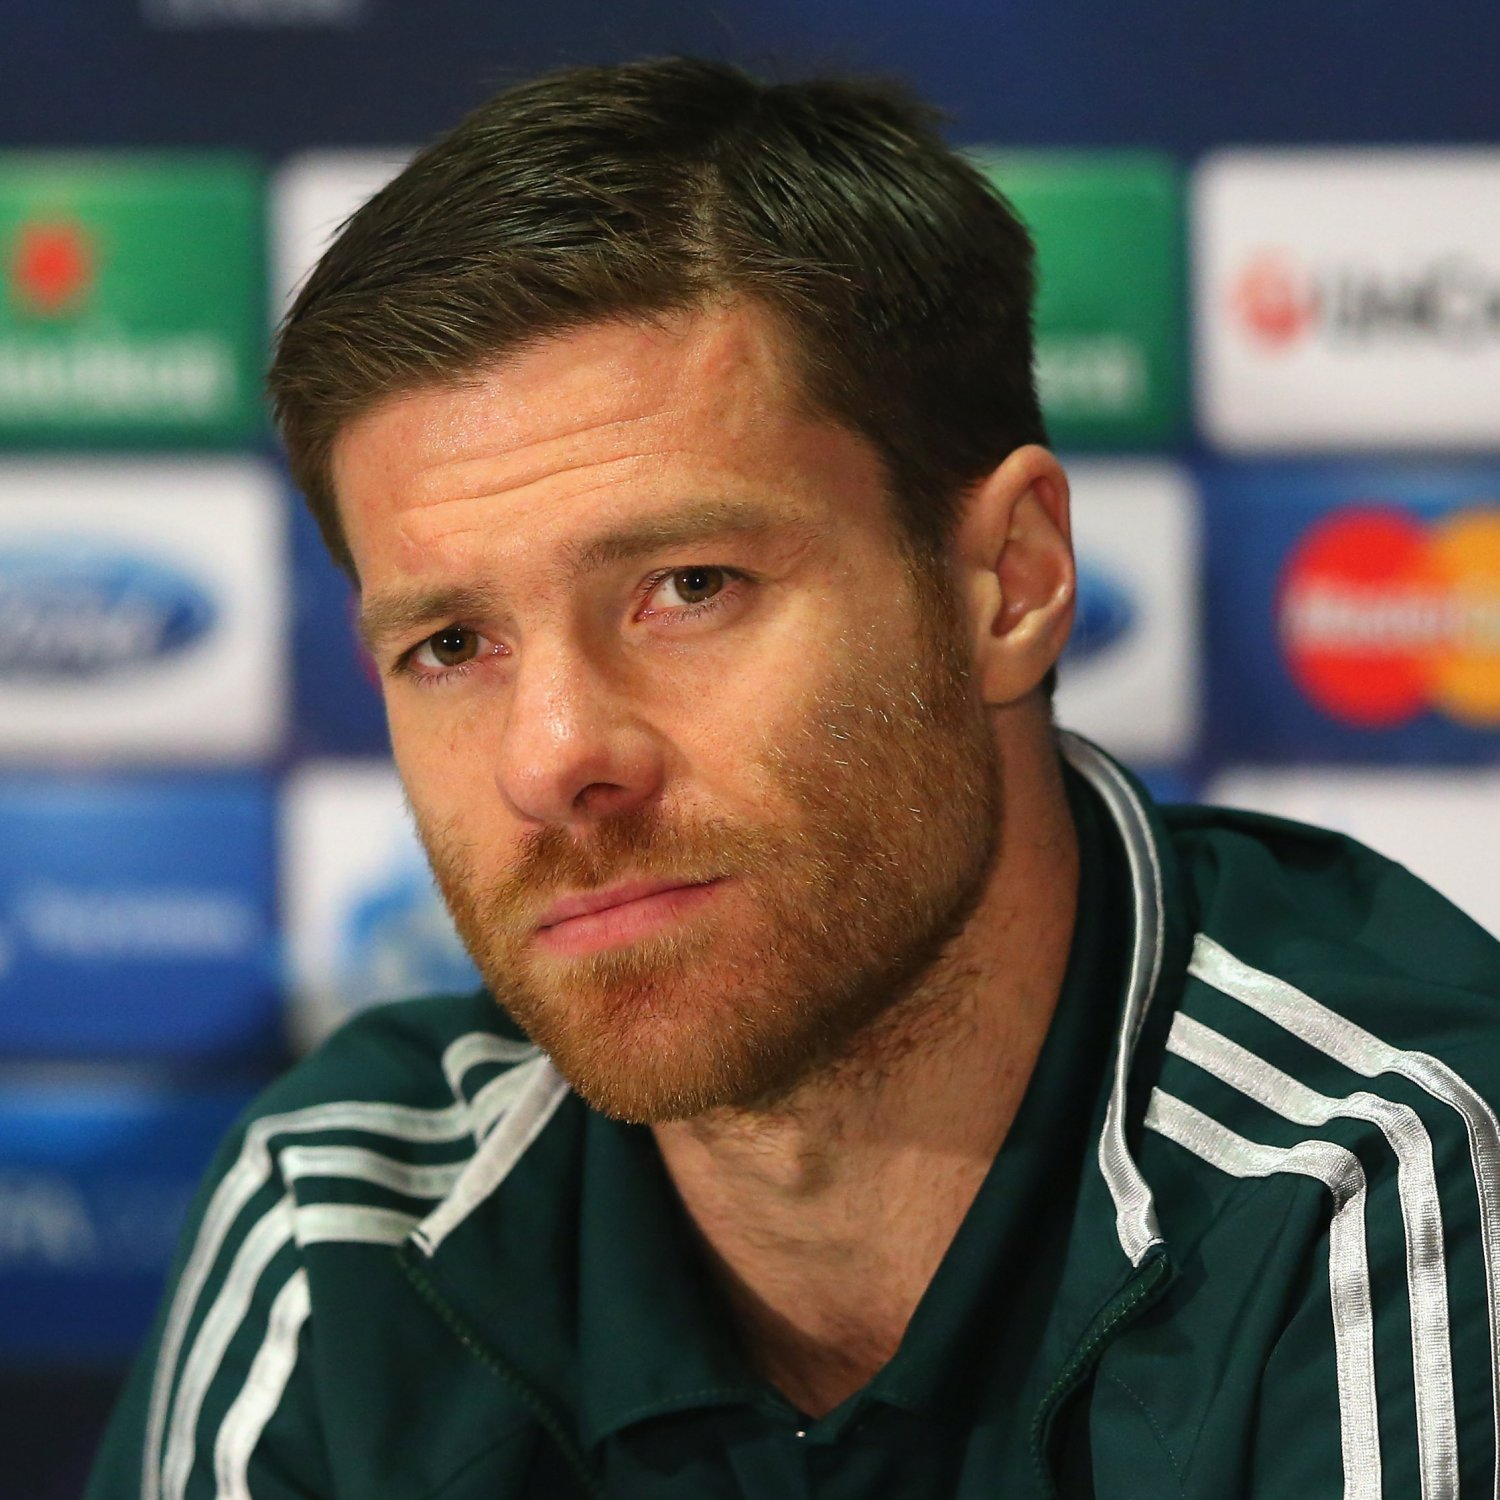 Xabi Alonso earned a  million dollar salary - leaving the net worth at 5 million in 2018